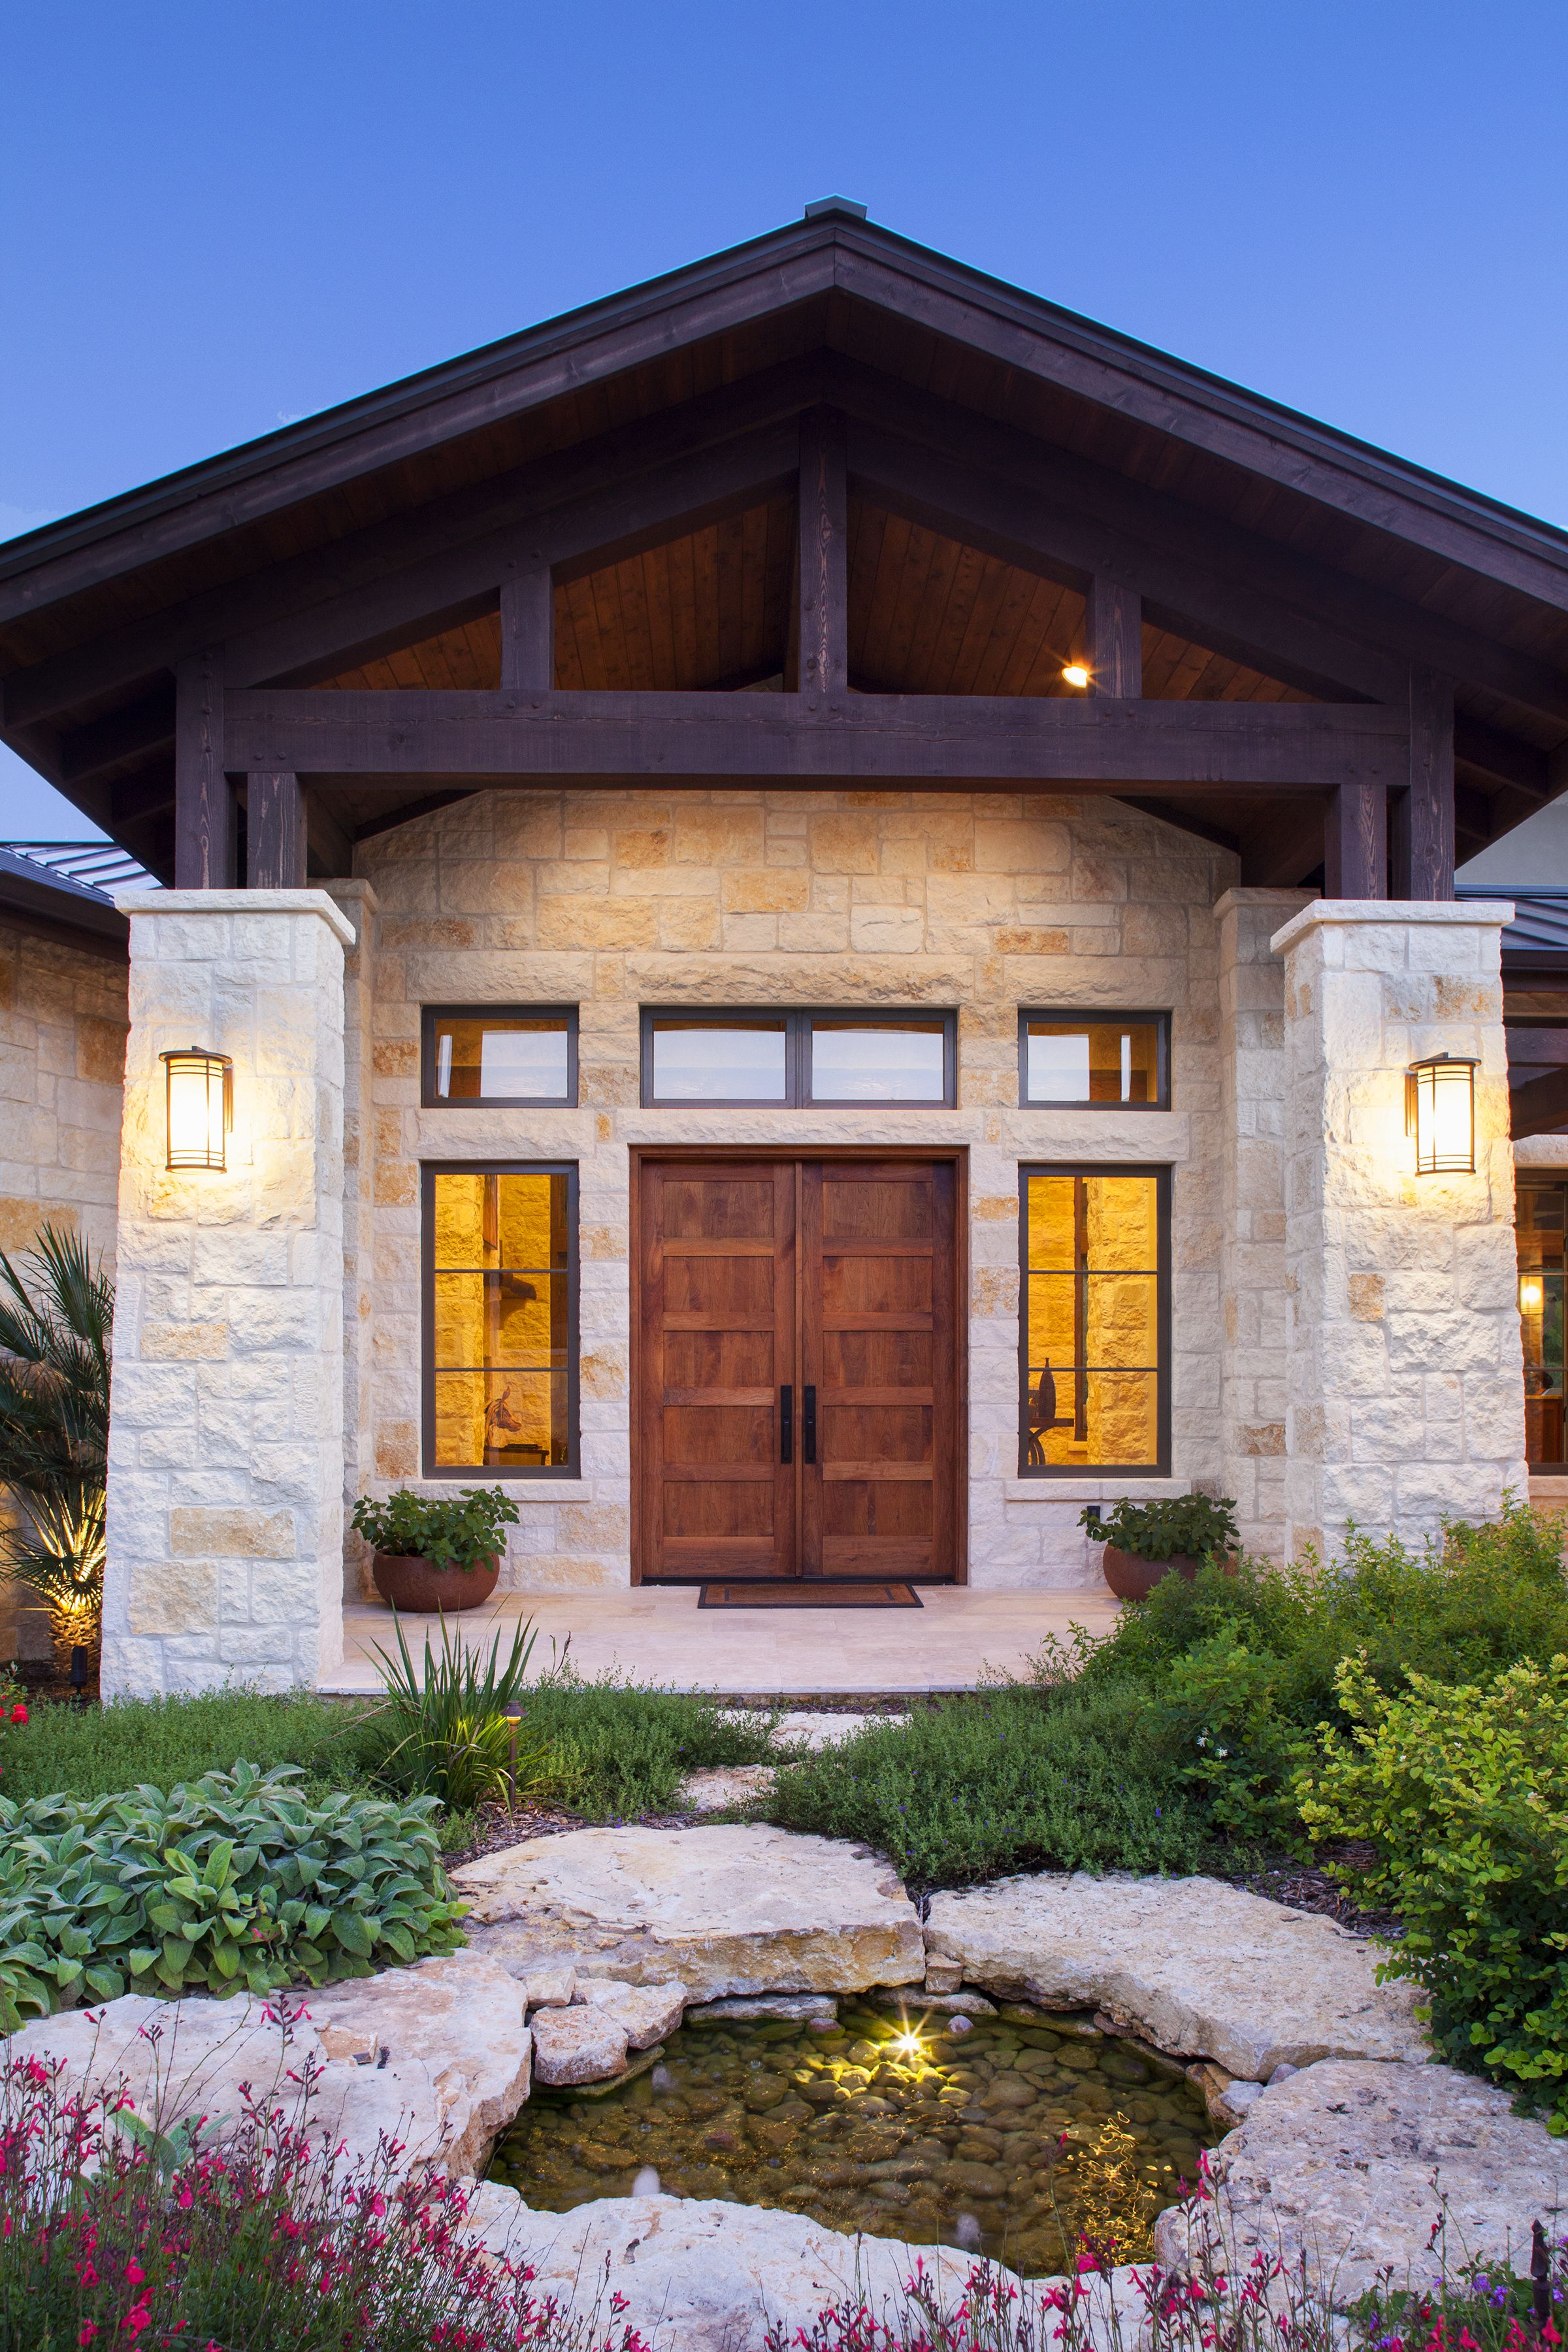 stone columns, wood beam details, and large windows add interest